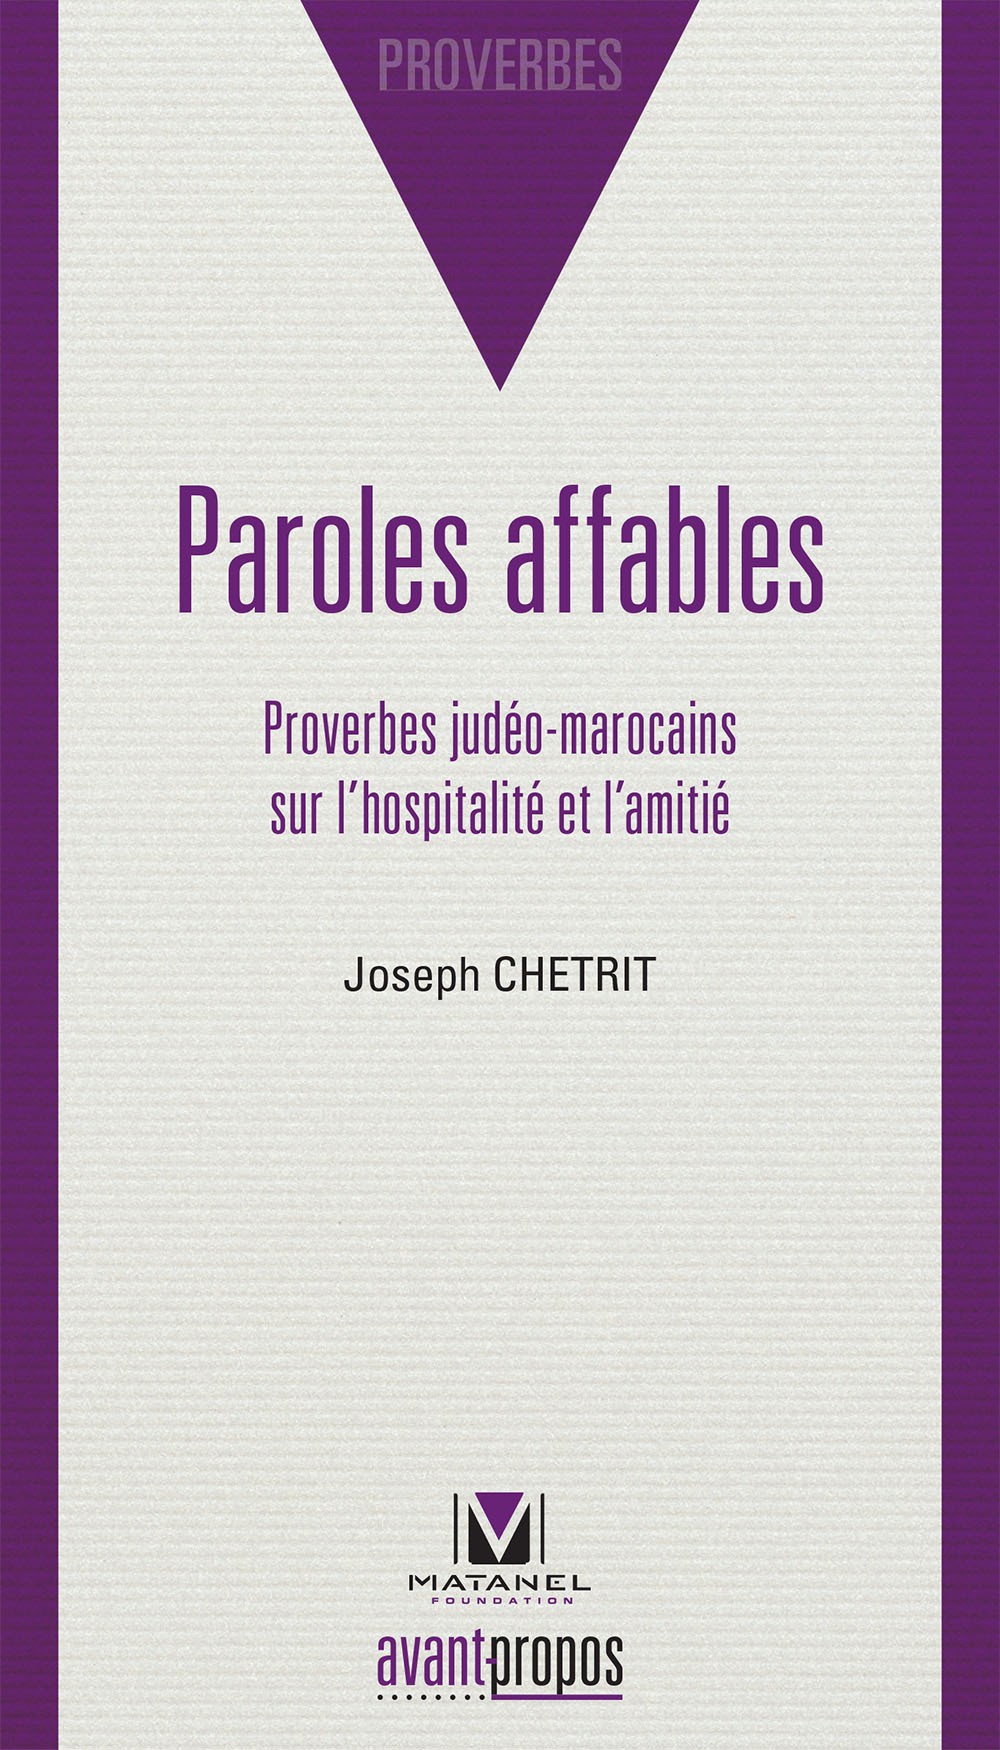 PAROLES AFFABLES